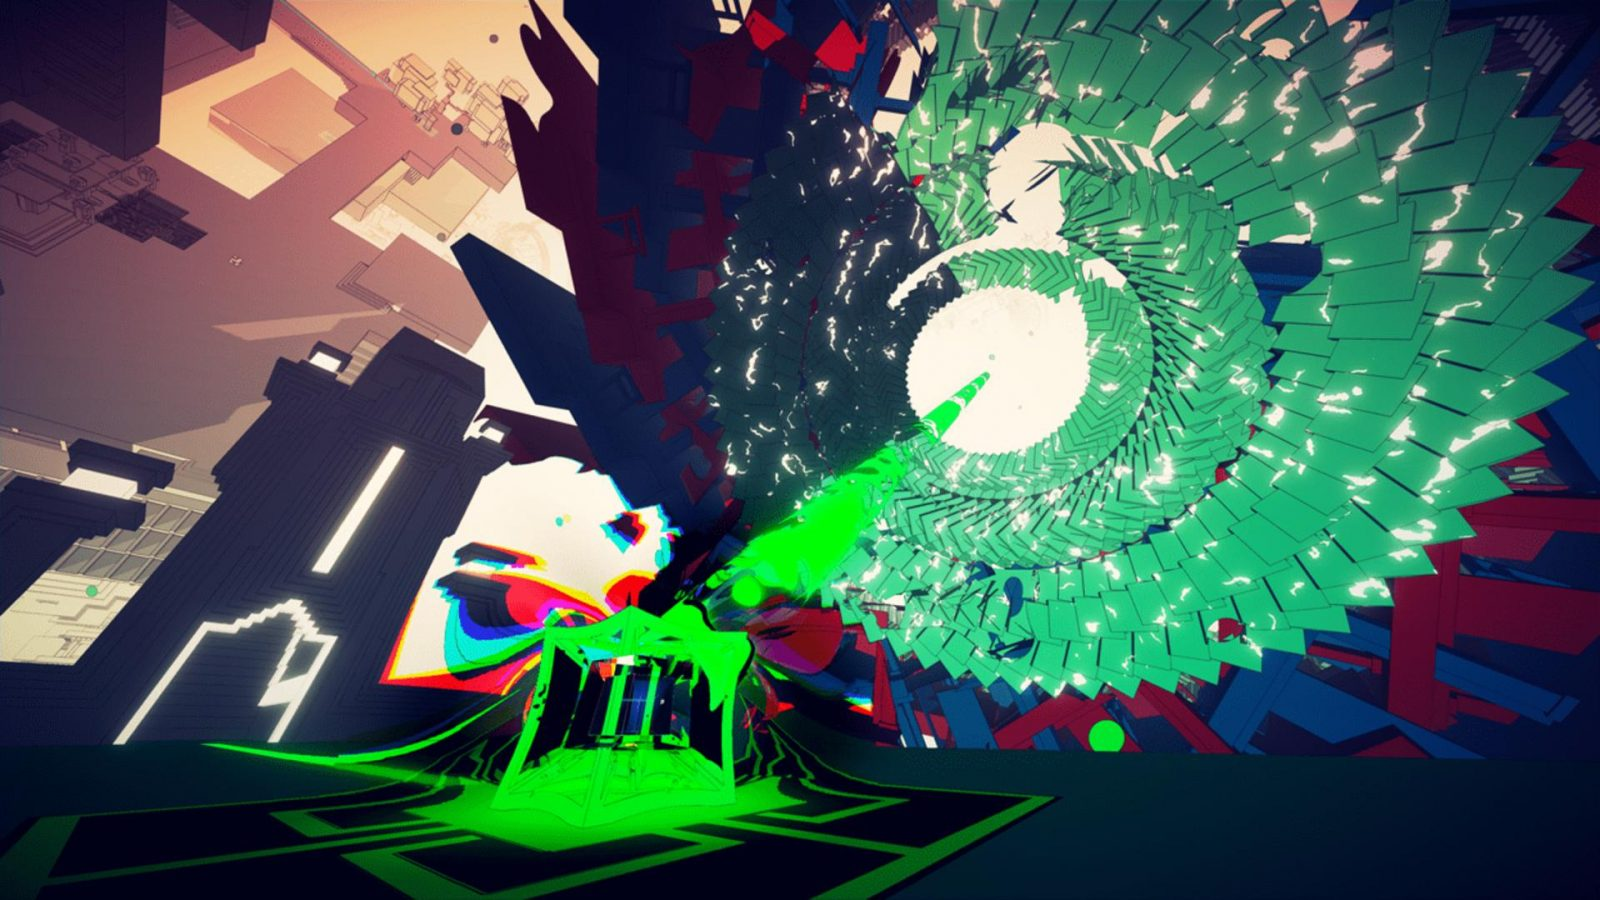 Manifold Garden Launches This Friday After Seven Years of Development